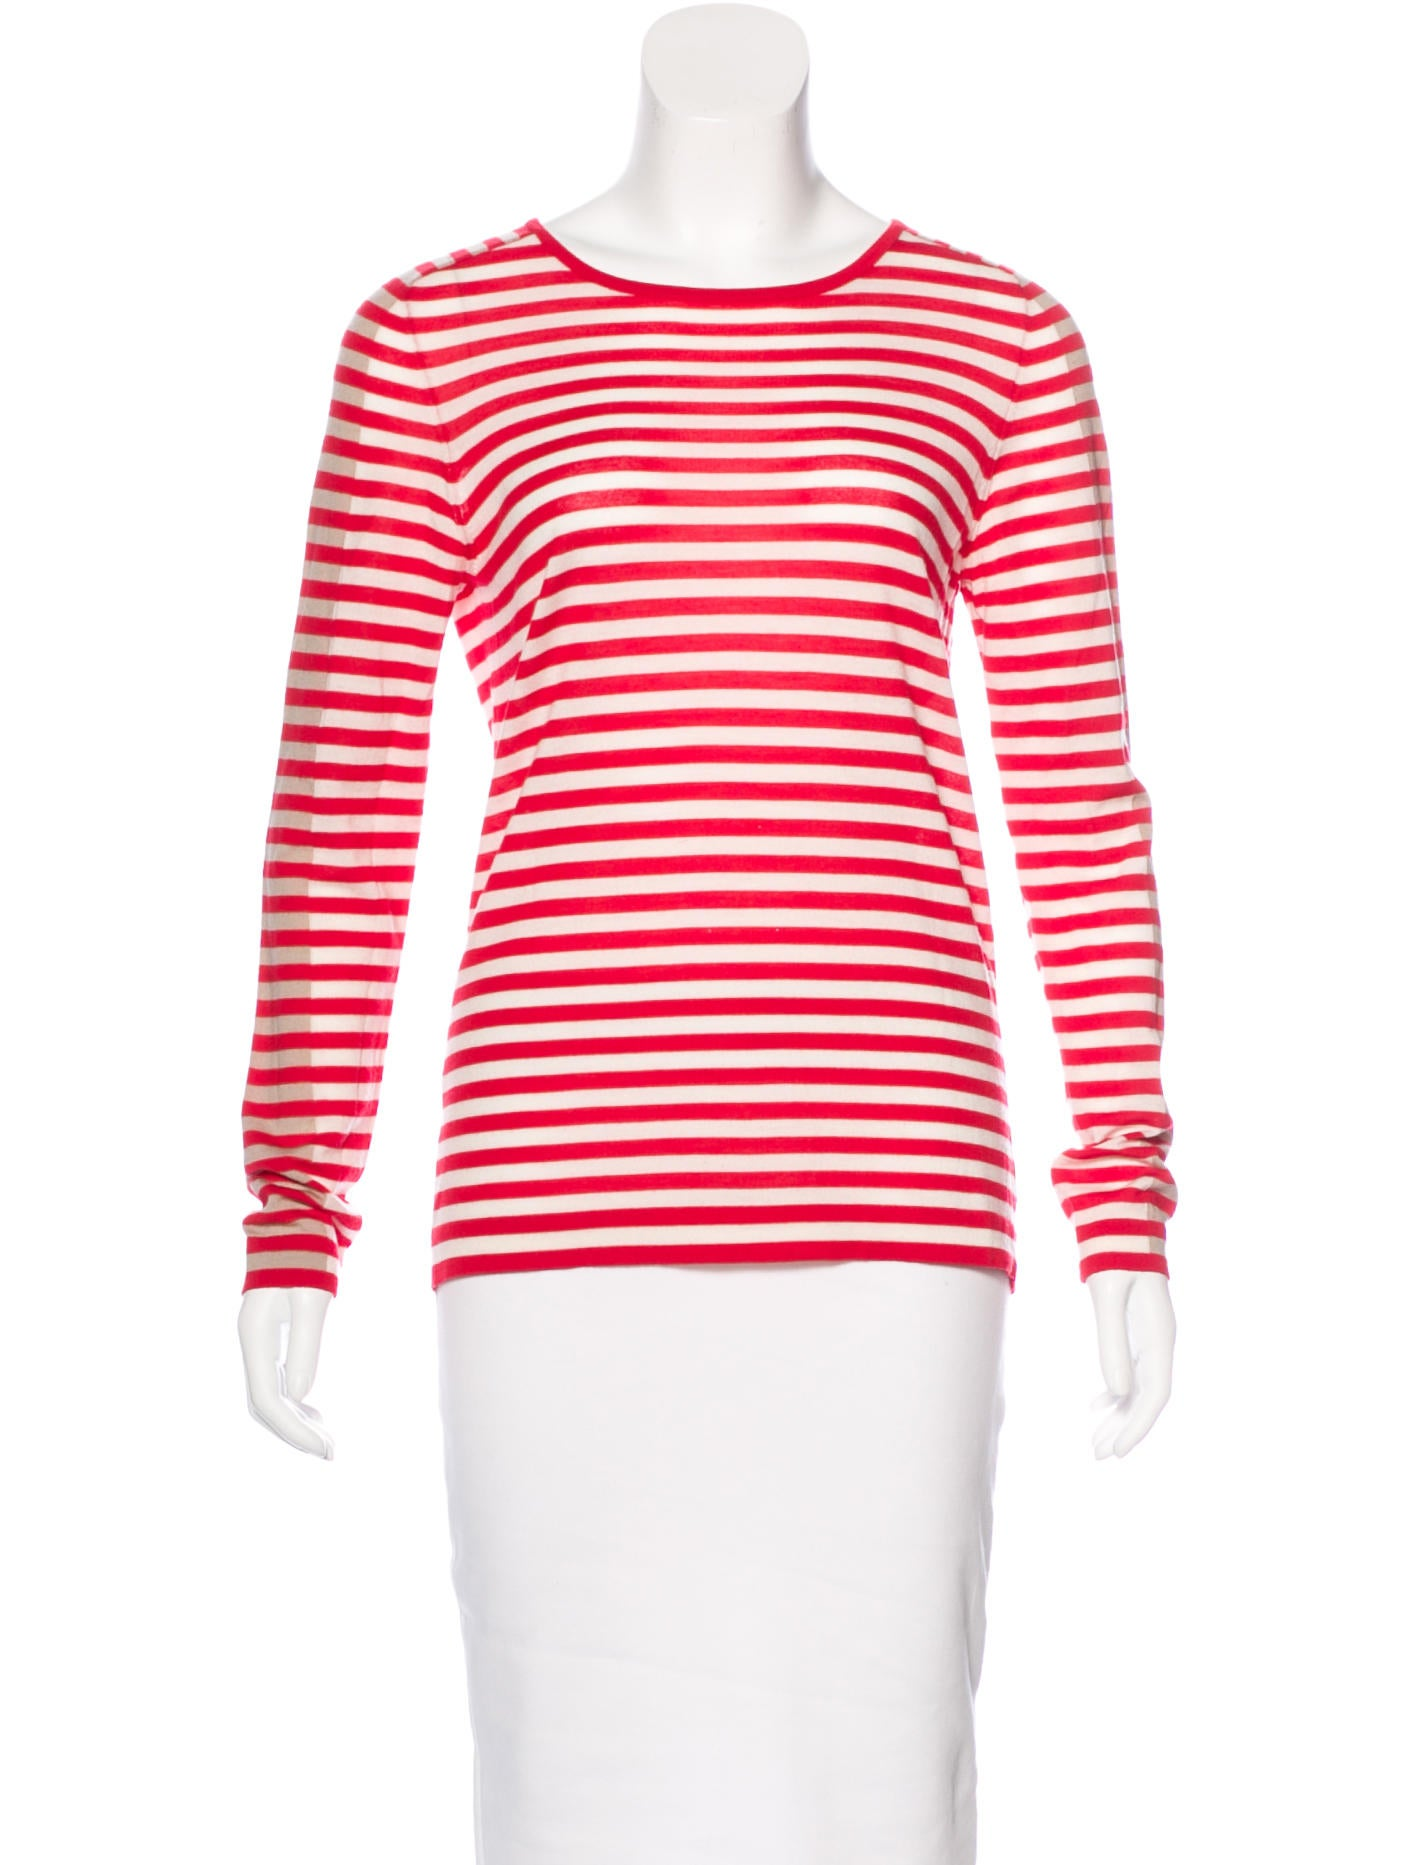 Akris punto wool striped top clothing wak30305 the for Best wool shirt jackets